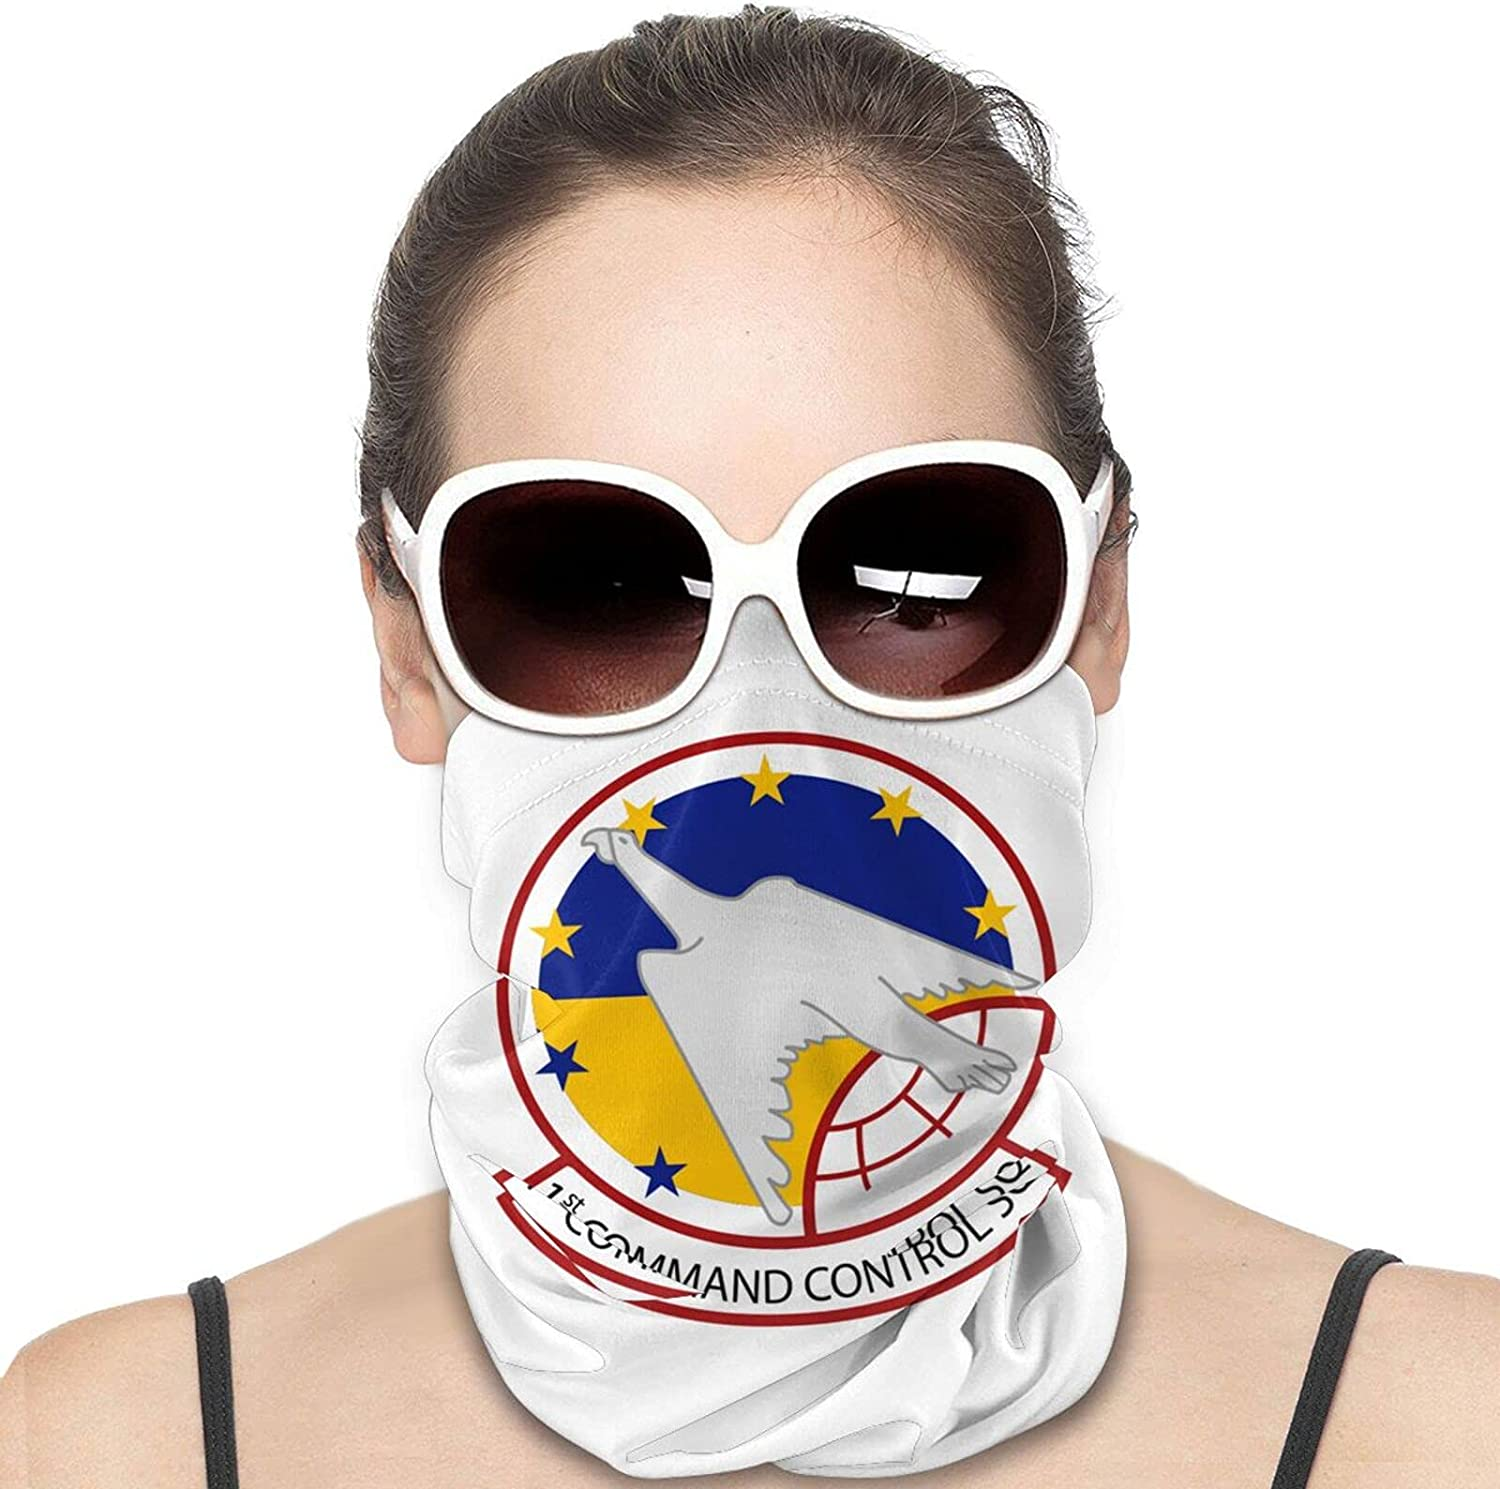 1st Command Control Squad-ron Round Neck Gaiter Bandnas Face Cover Uv Protection Prevent bask in Ice Scarf Headbands Perfect for Motorcycle Cycling Running Festival Raves Outdoors